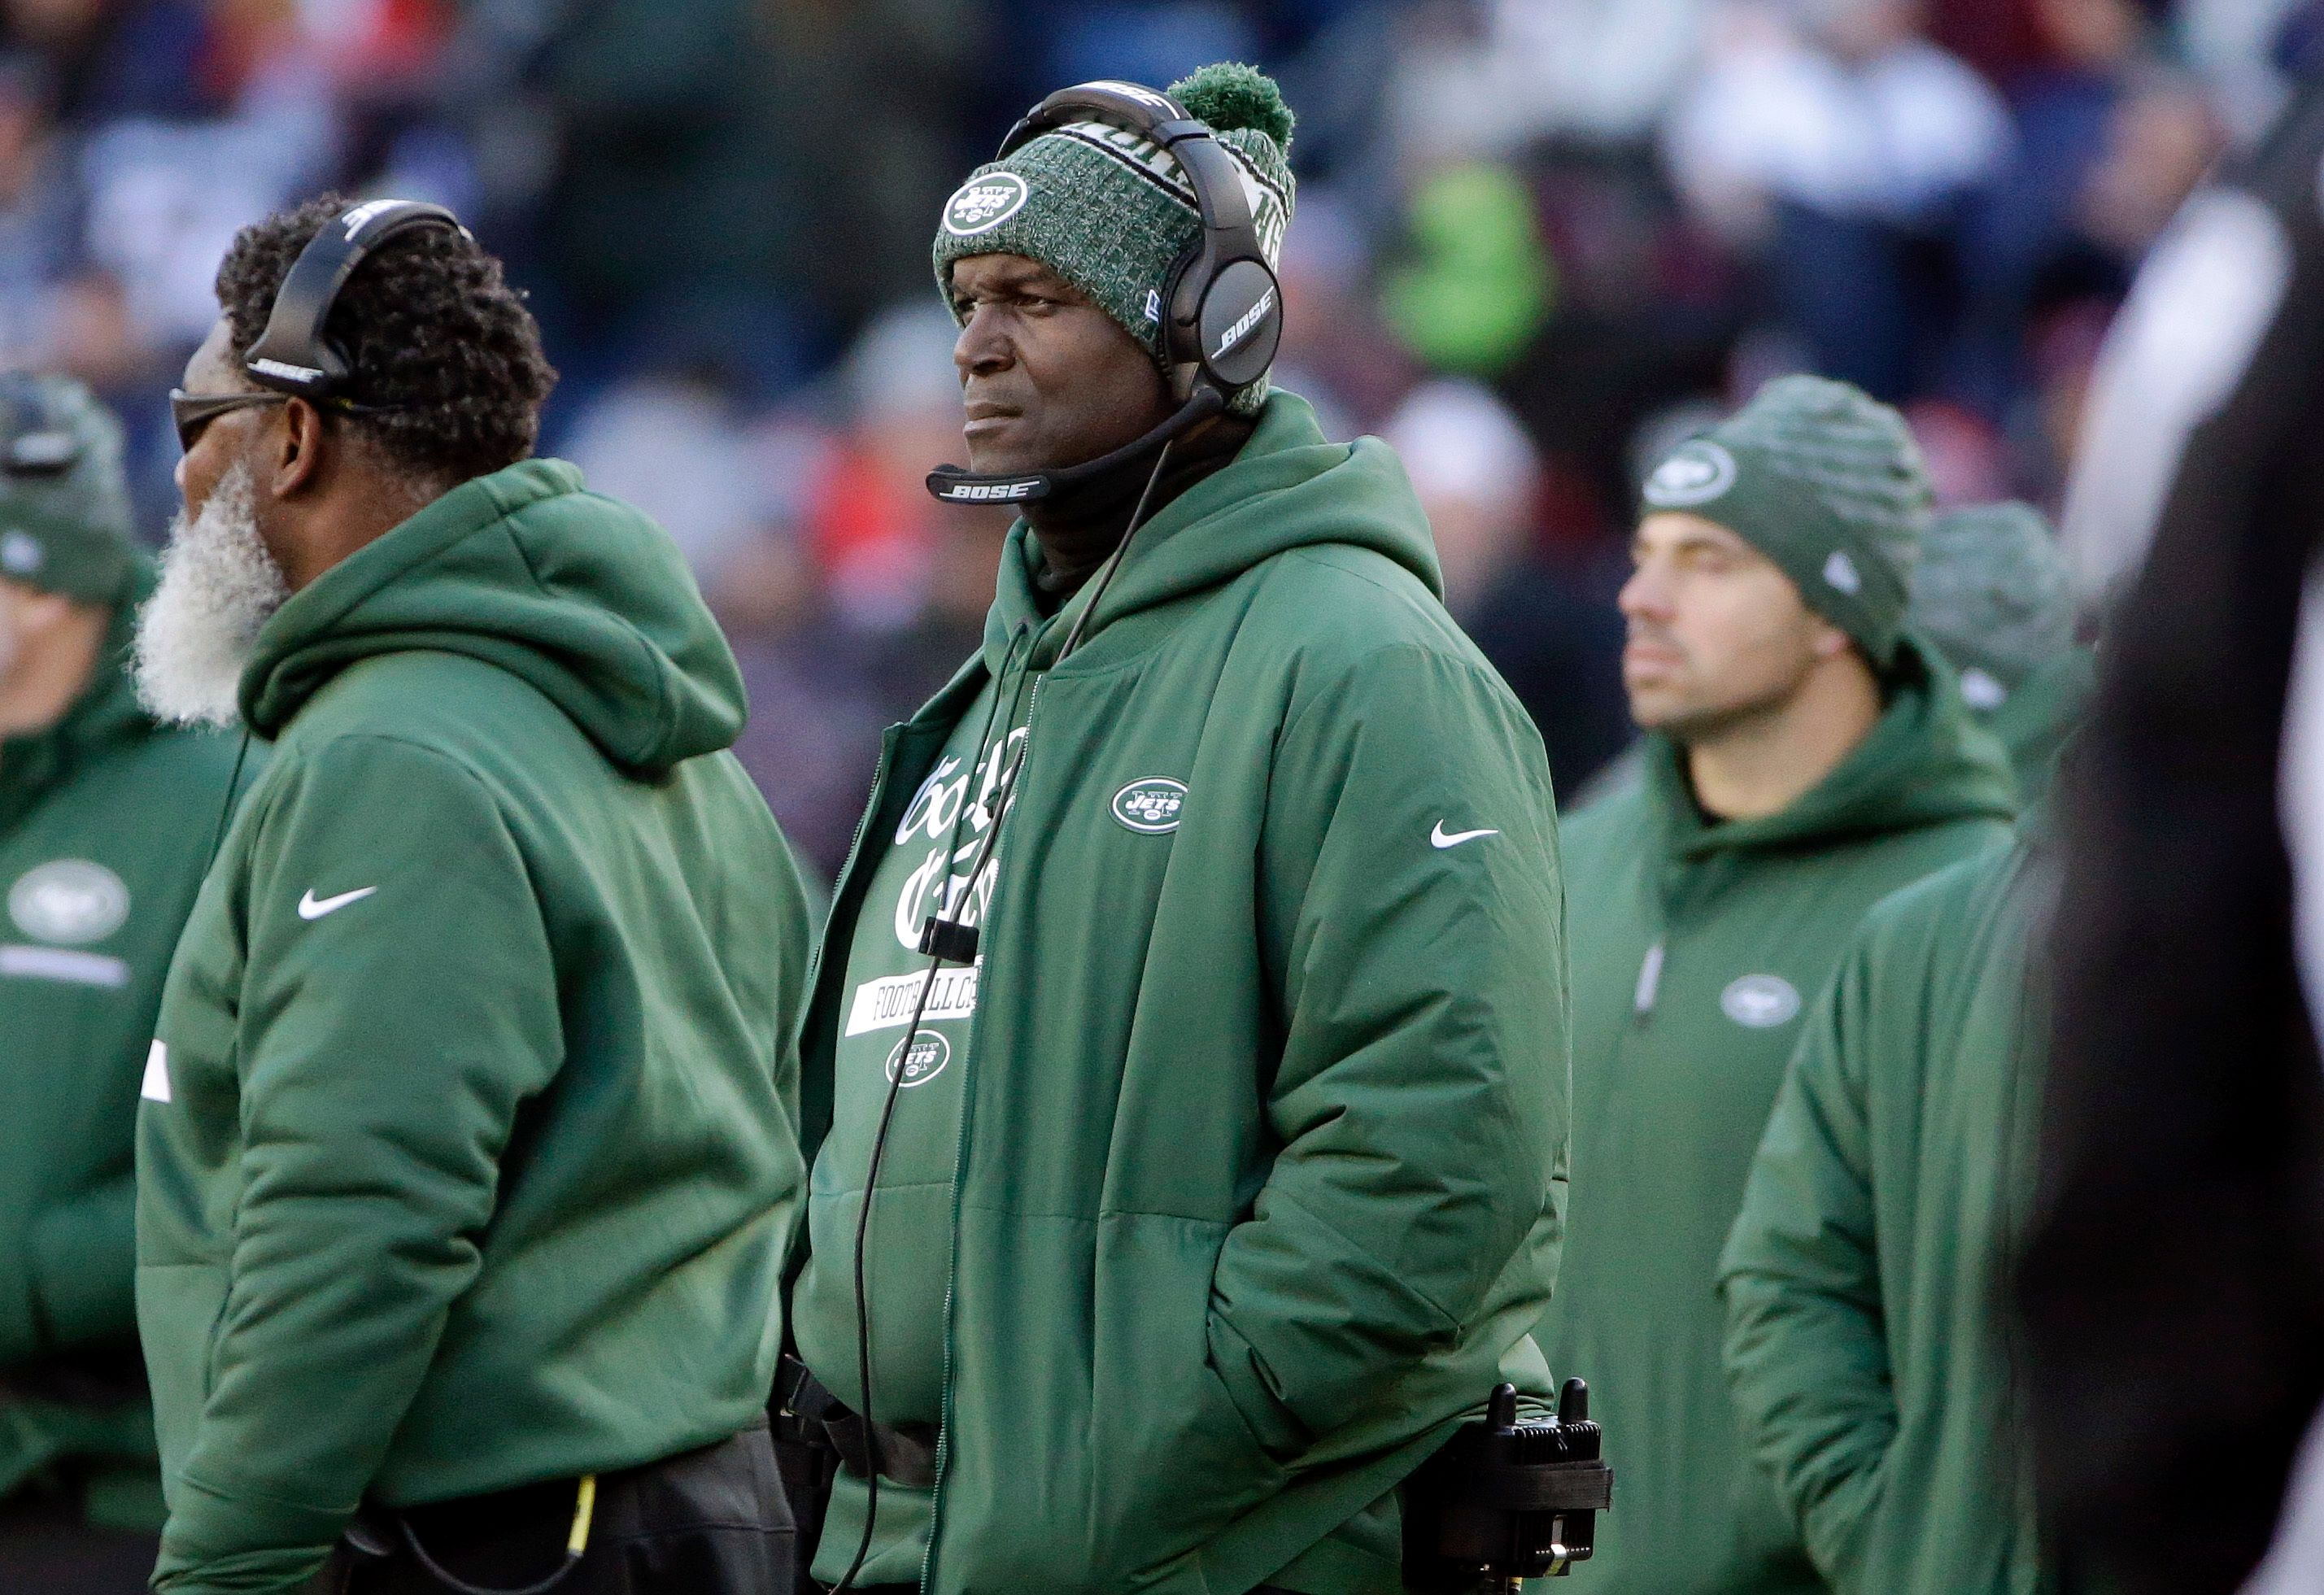 Jets fire coach Todd Bowles after 4 seasons with no playoffs